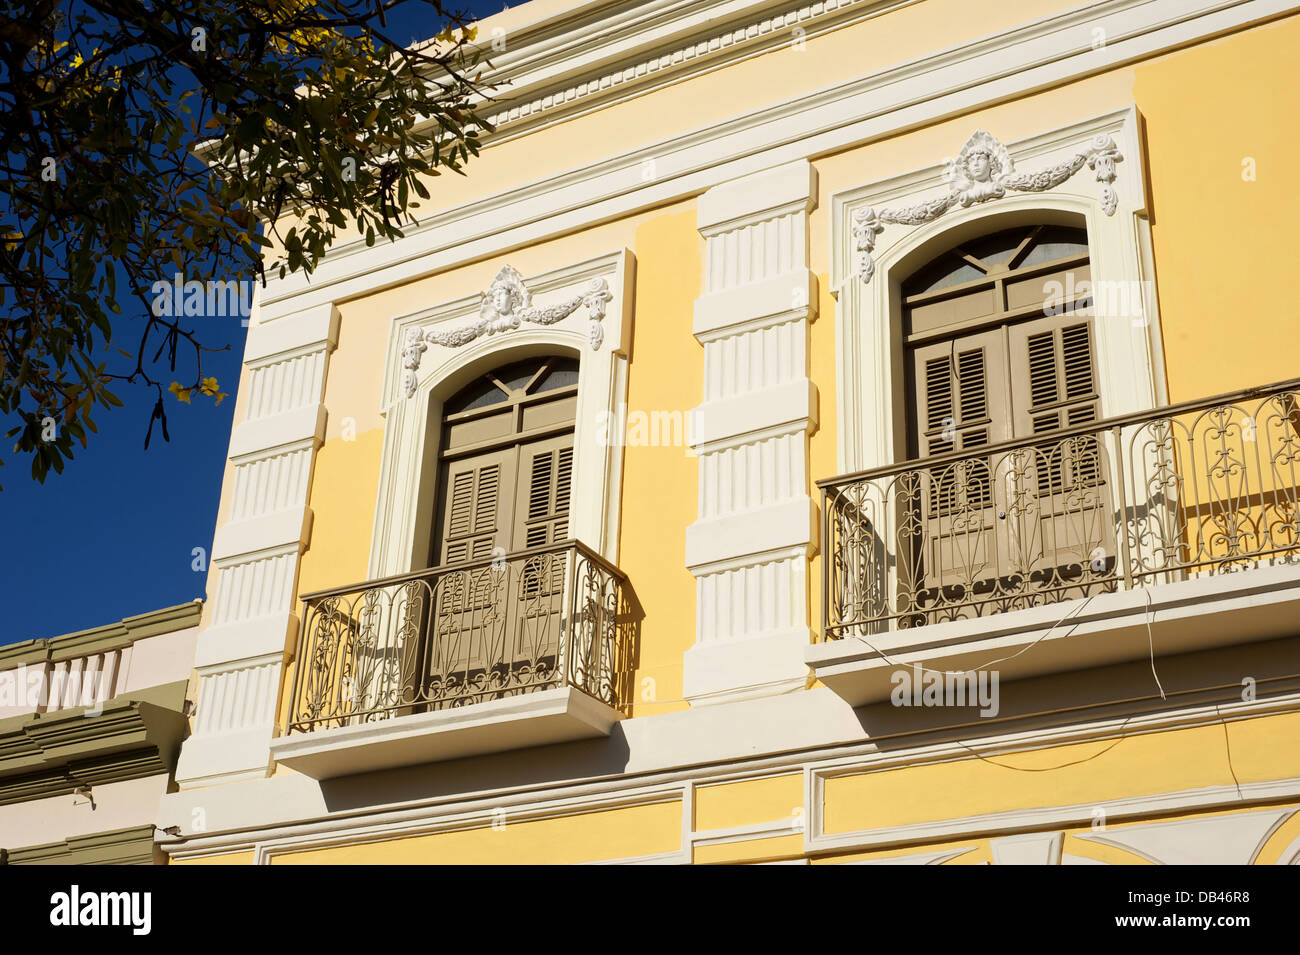 Architectural detail, Ponce, Puerto Rico - Stock Image